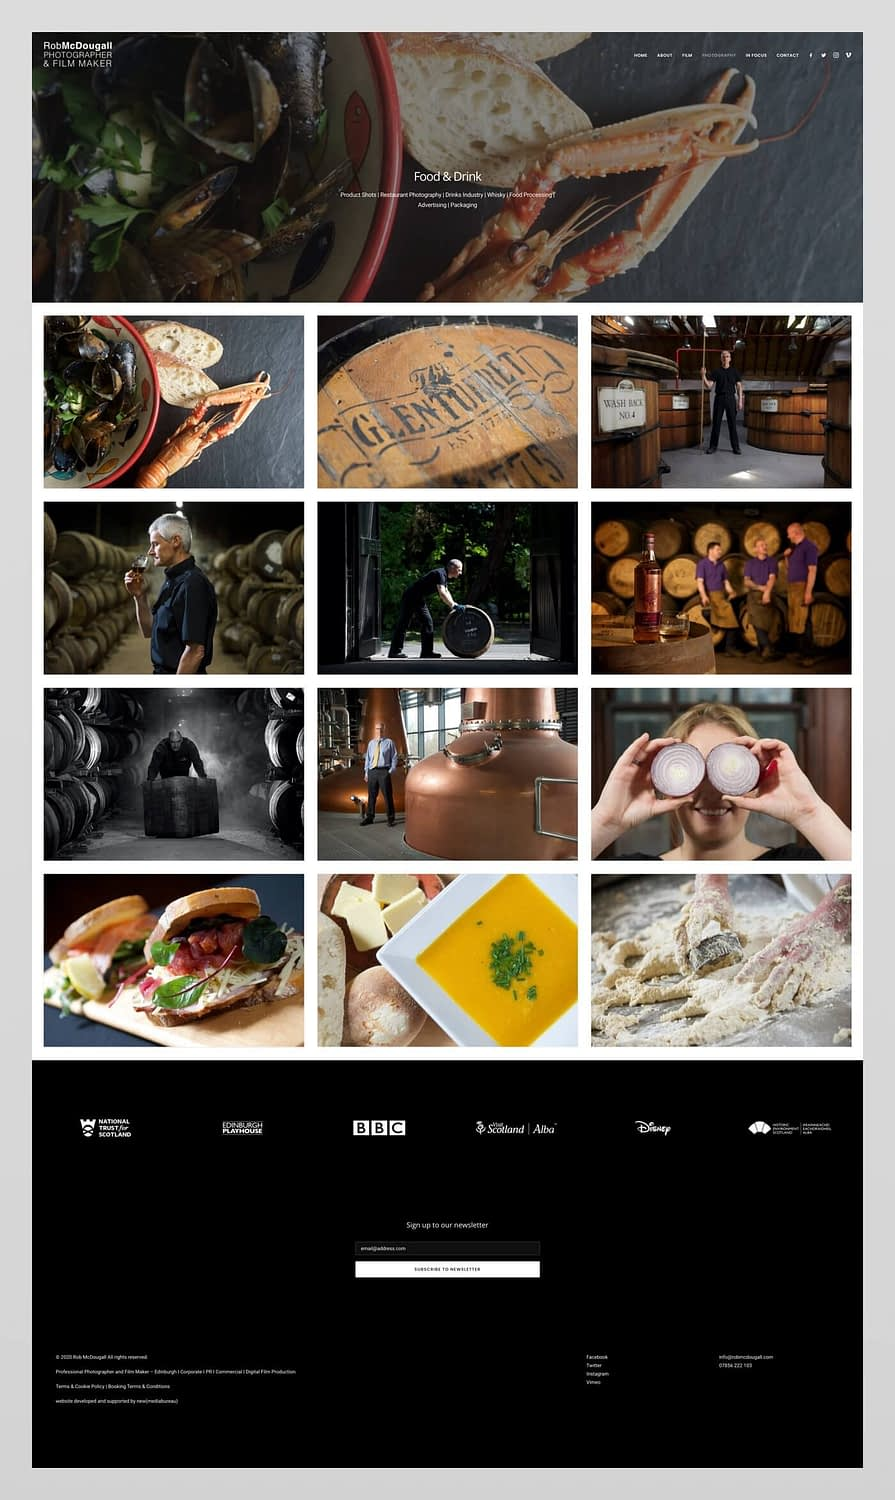 Web design for Rob McDougall Photographer & Film Maker, based in Edinburgh and East Lothian